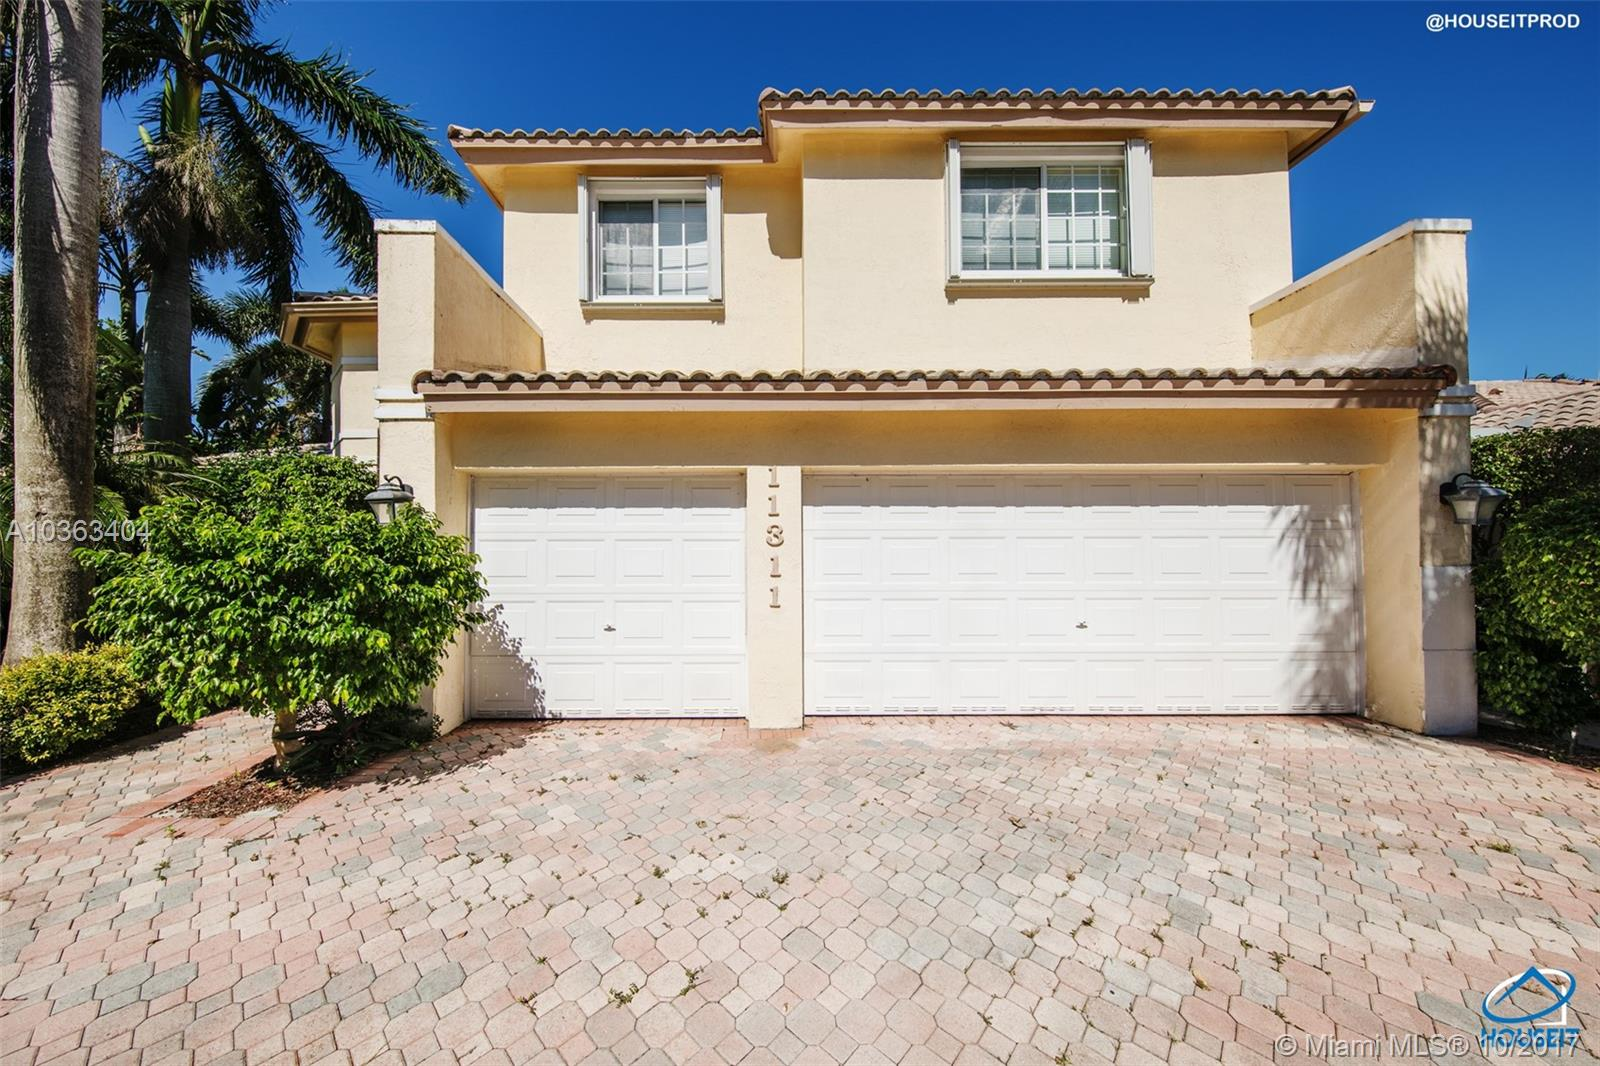 11311 Nw 61 St, Doral FL, 33178